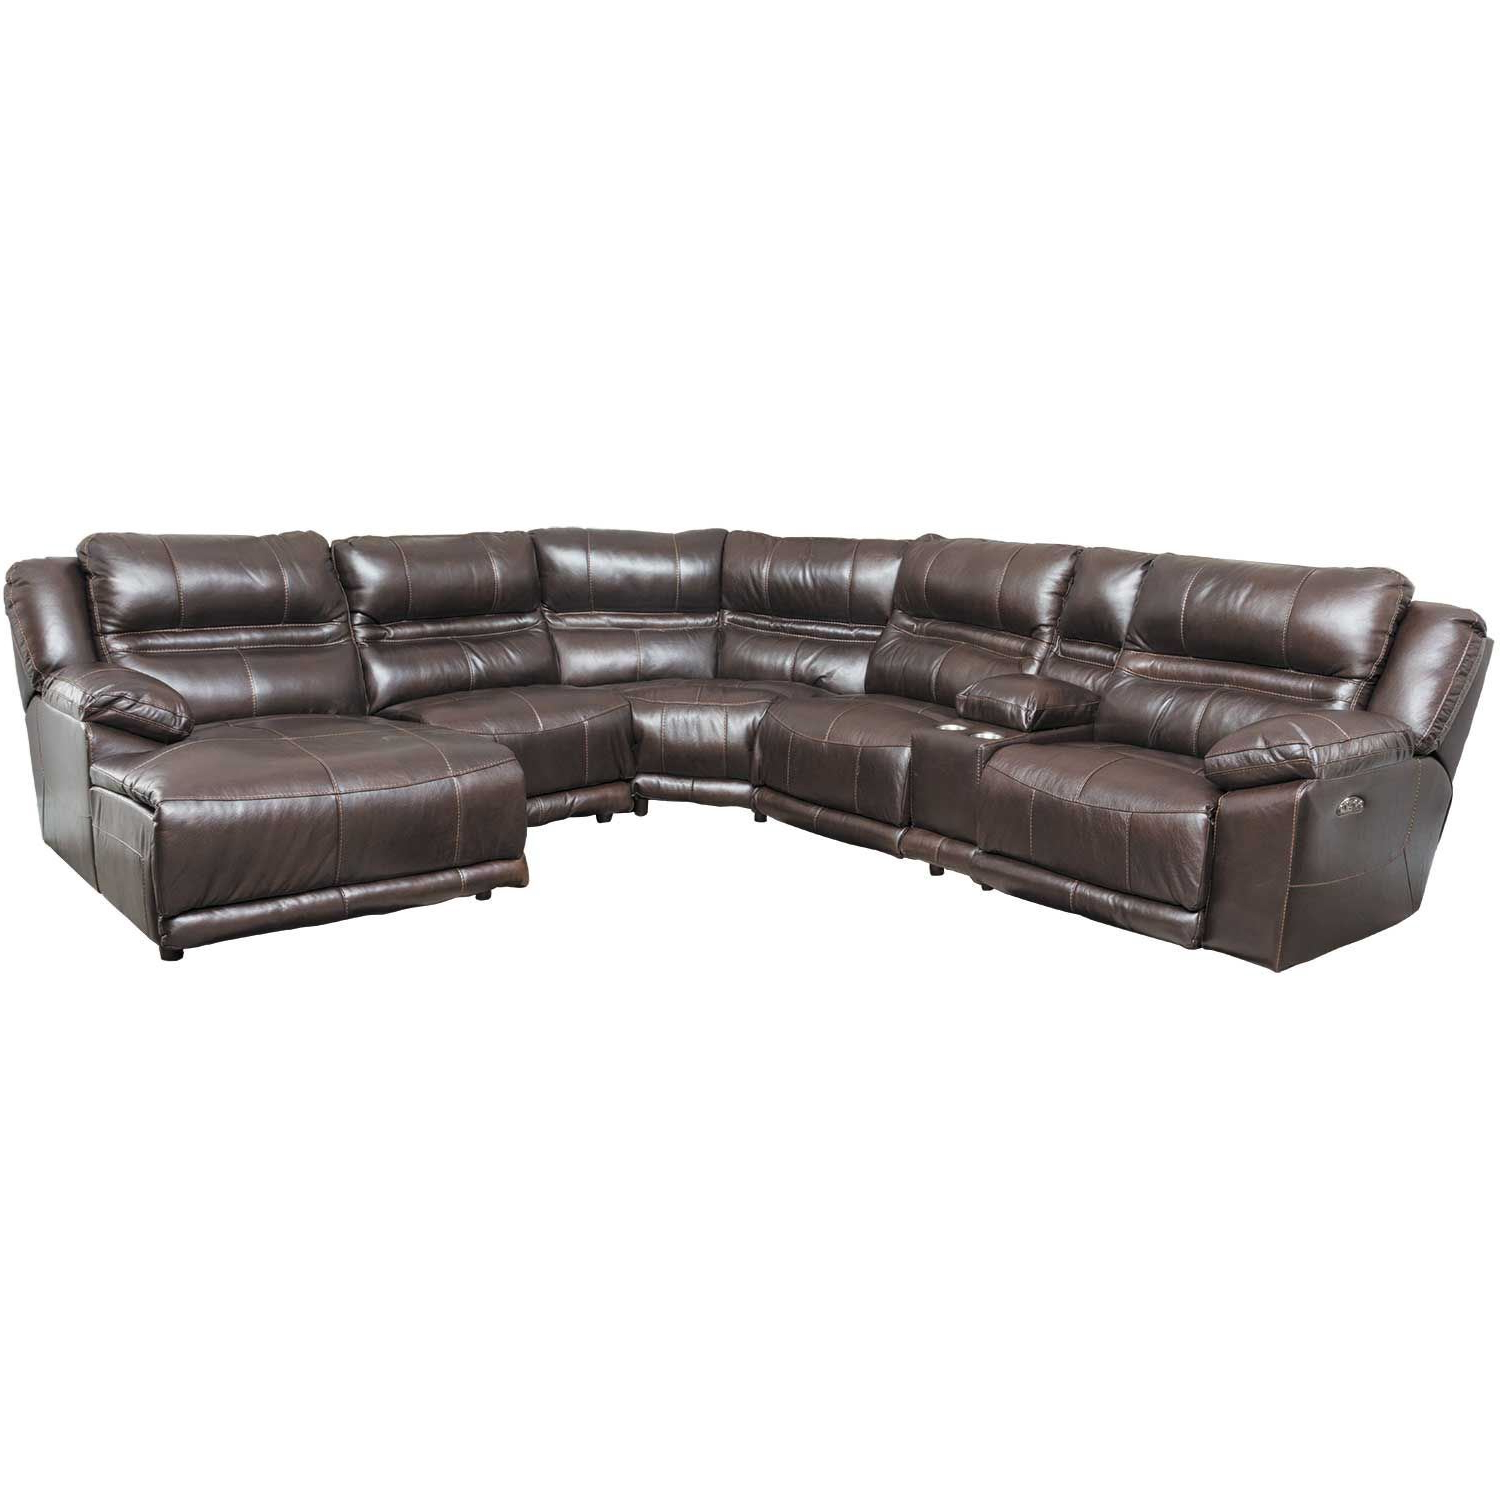 Trendy Bergamo 6 Piece Power Reclining Sectional With Adjustable Headrest Inside Jackson 6 Piece Power Reclining Sectionals (View 18 of 20)